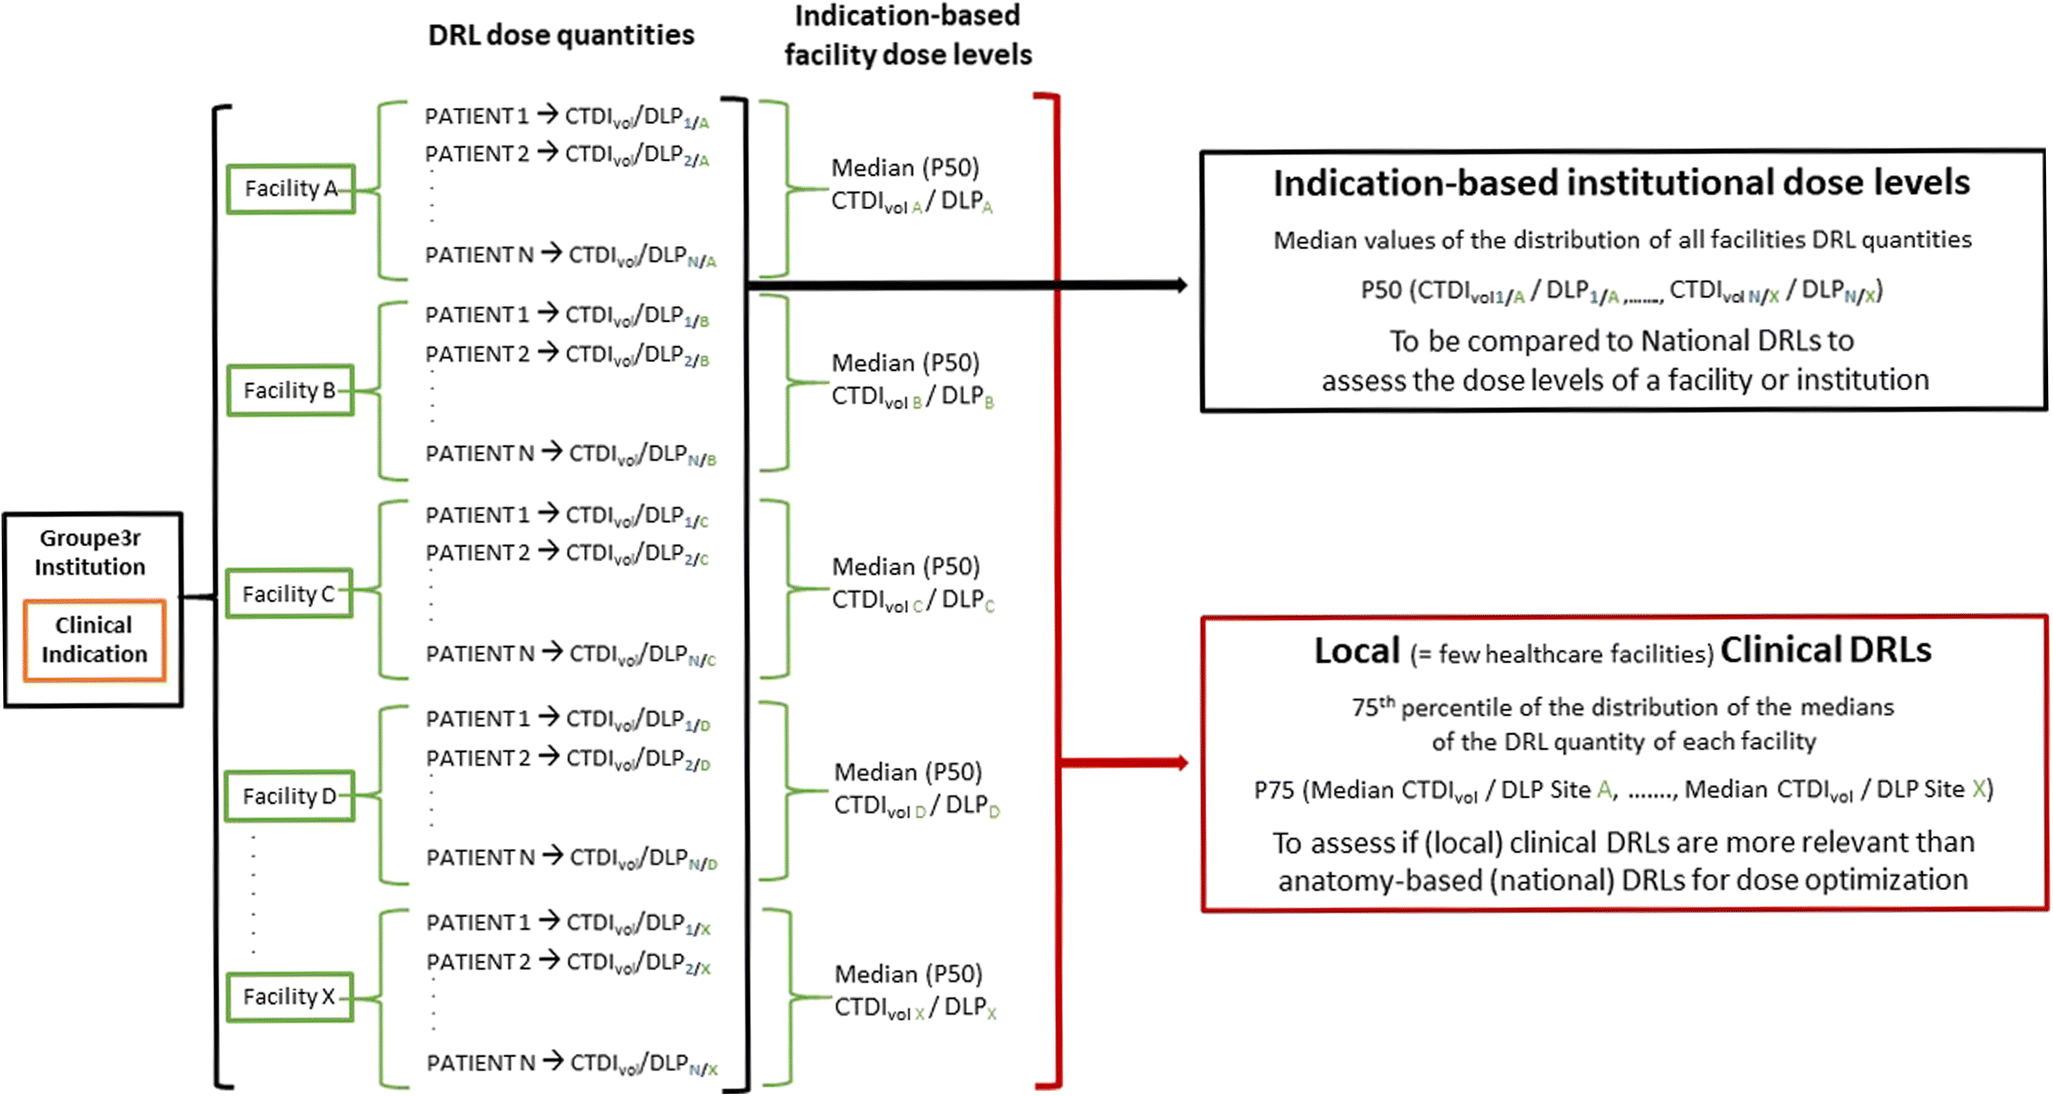 Local clinical diagnostic reference levels for chest and